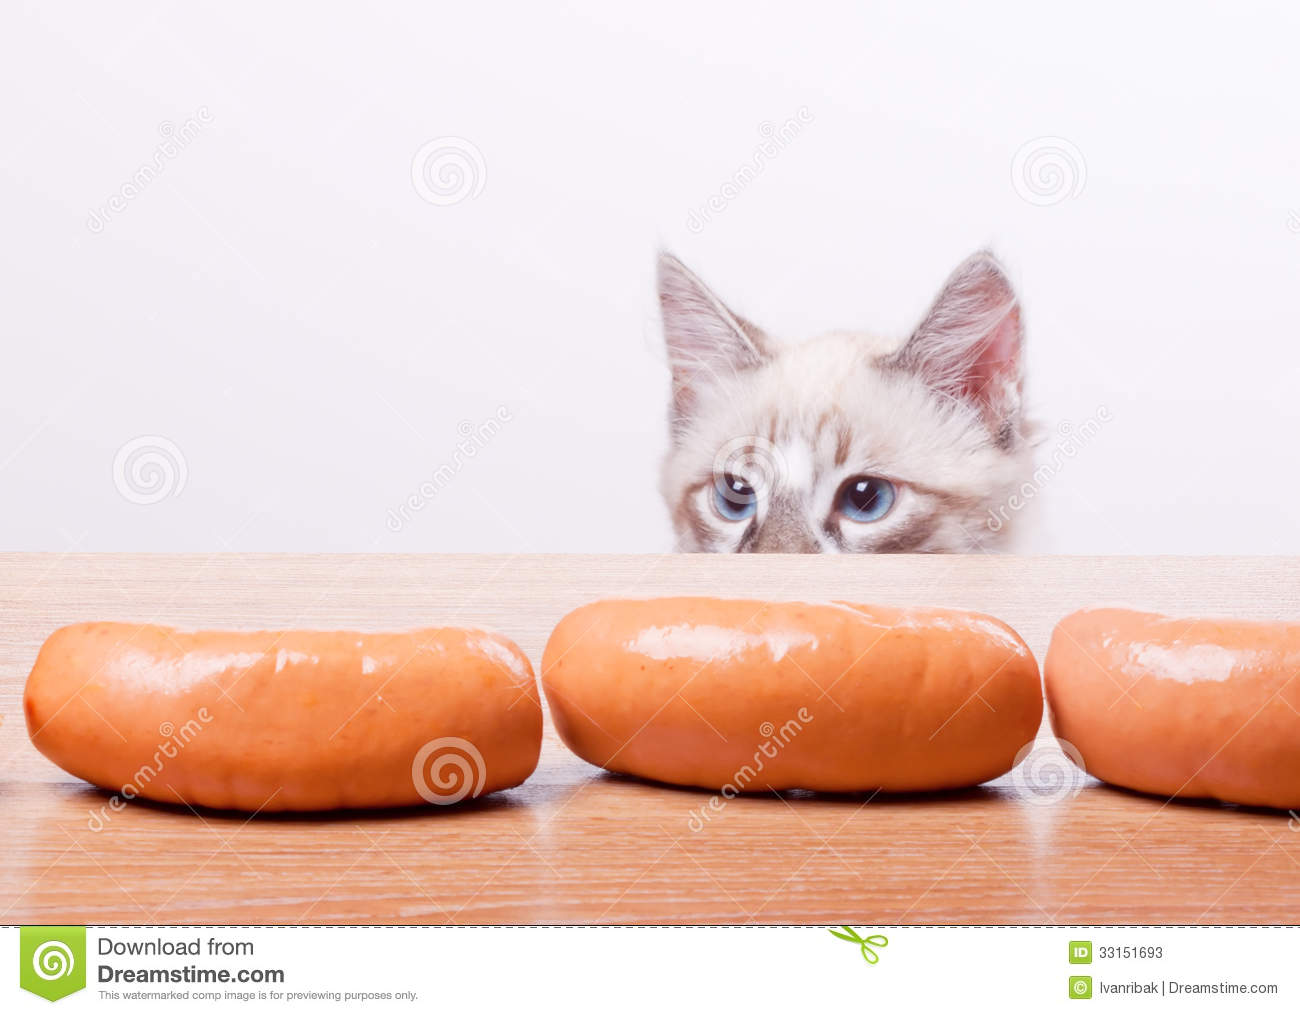 Cat tries to steal a sausage